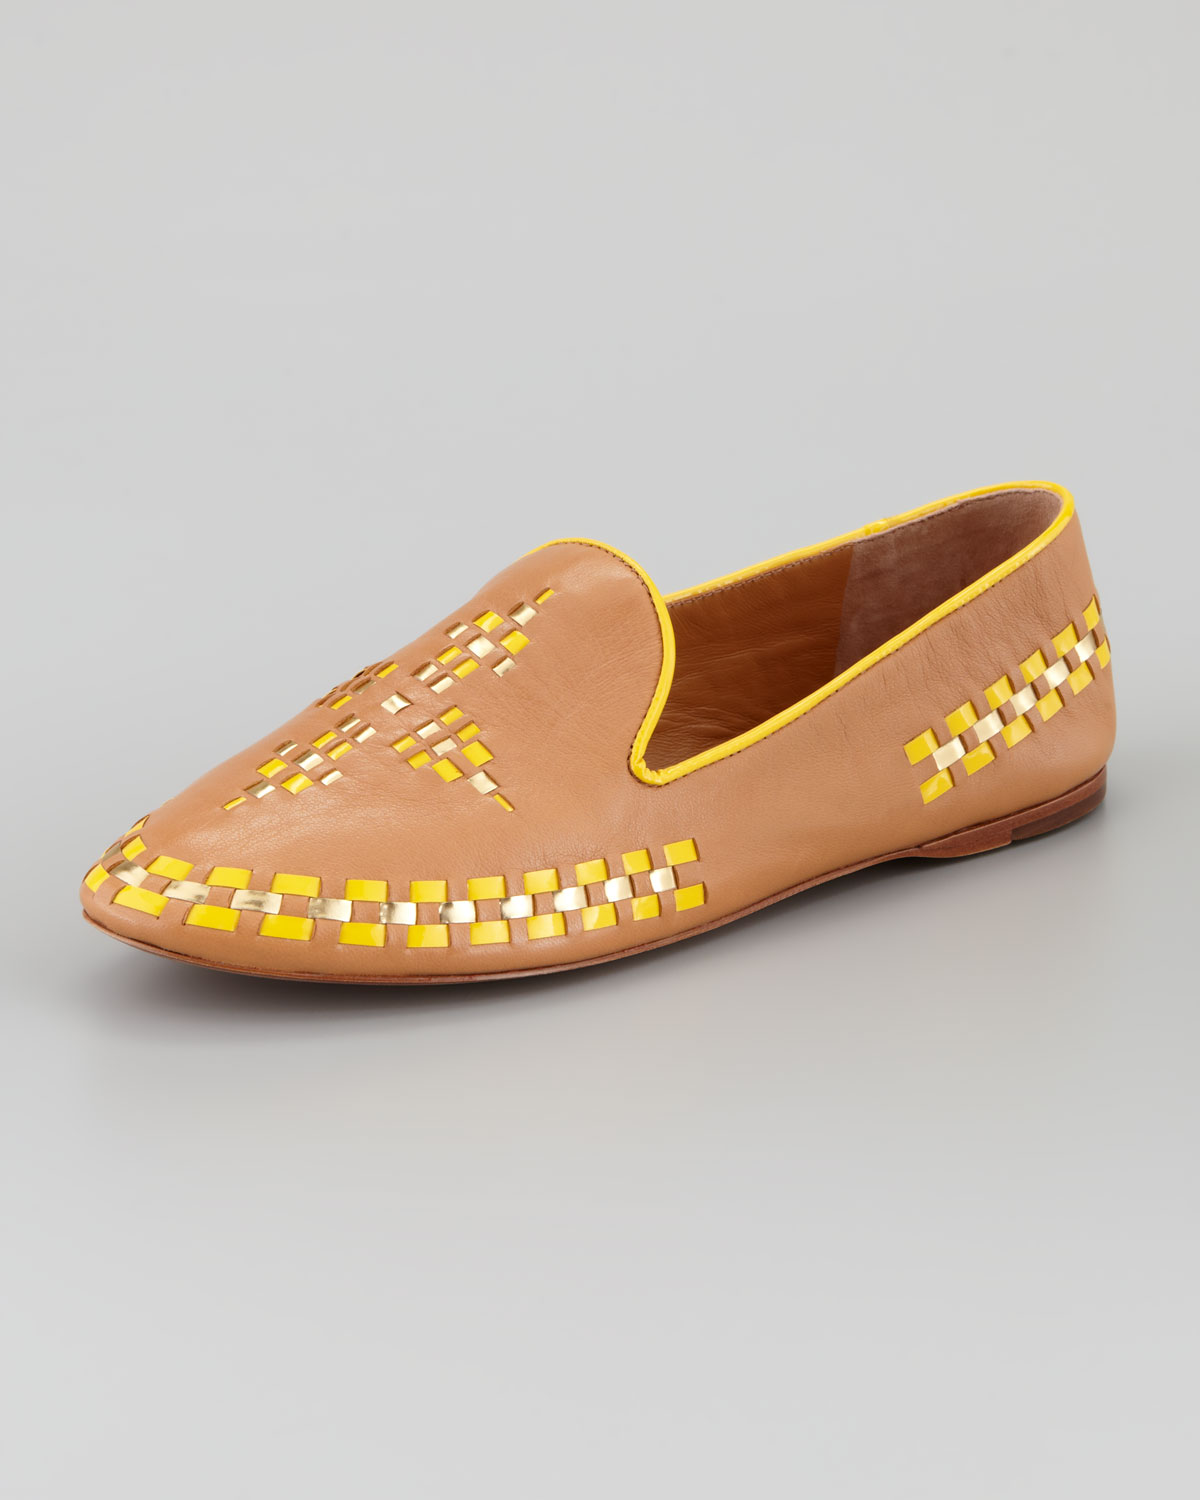 a7a0618b564 Lyst - Tory Burch Runway Marlow Leather Topstitch Trim Loafer in Brown